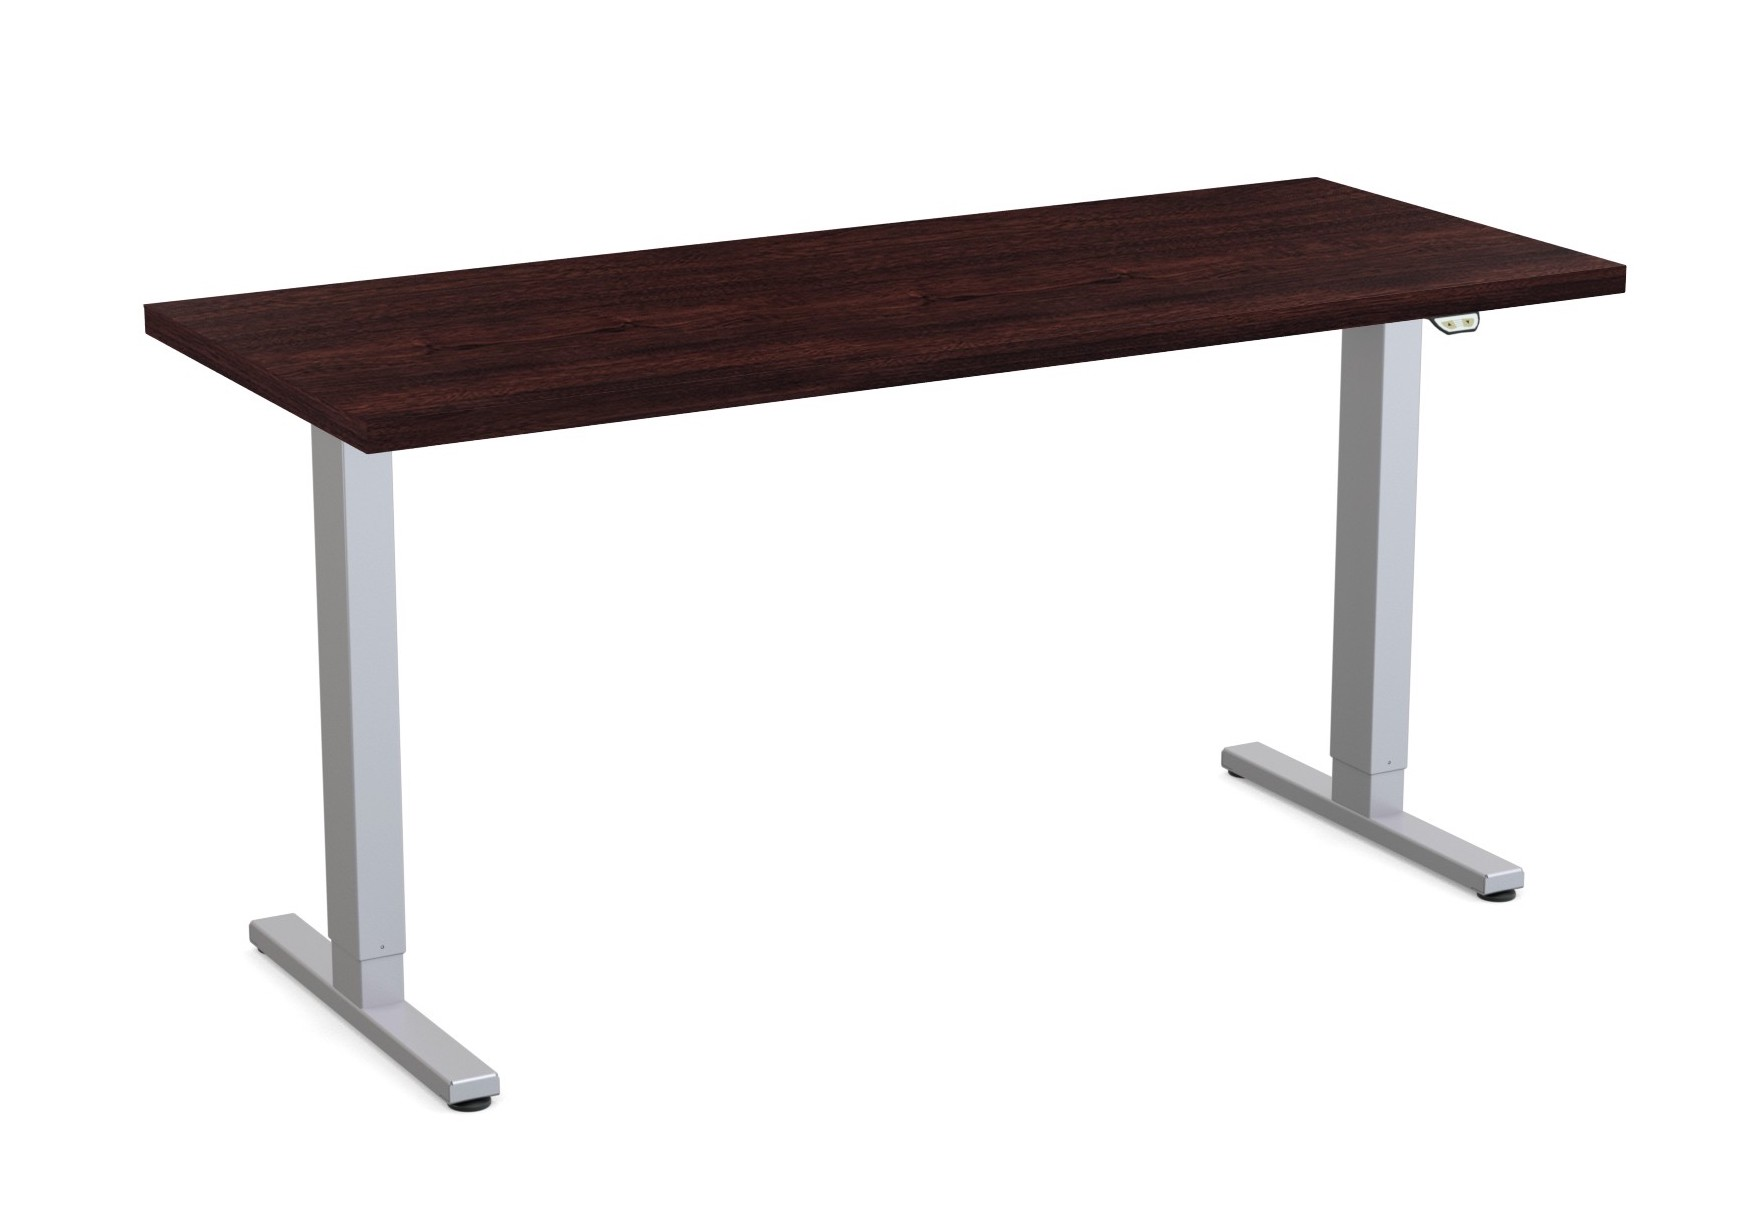 special-t liberty height adjustable table in espresso